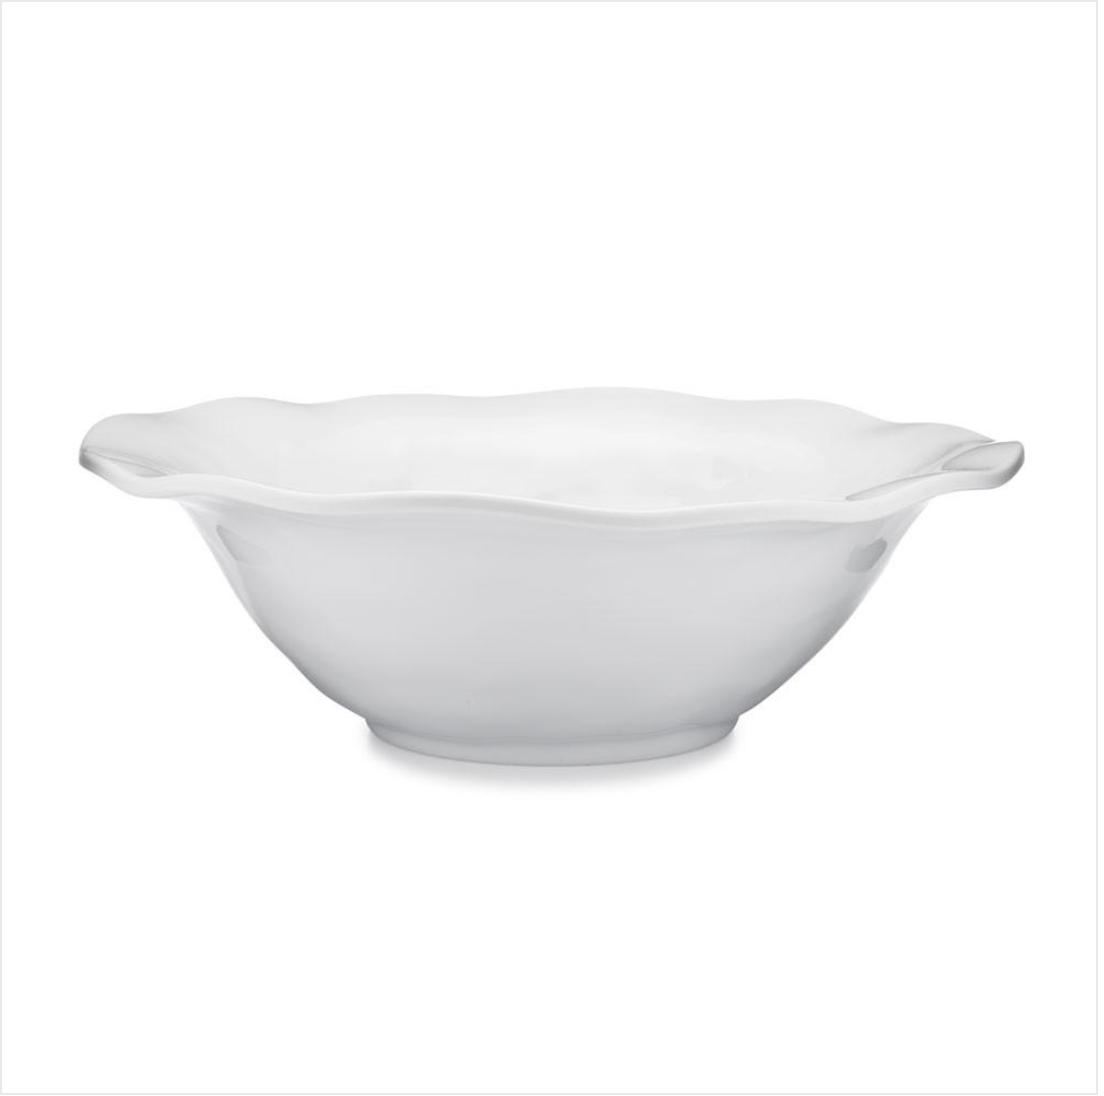 "Ruffle 12"" Round Melamine Serving Bowl"